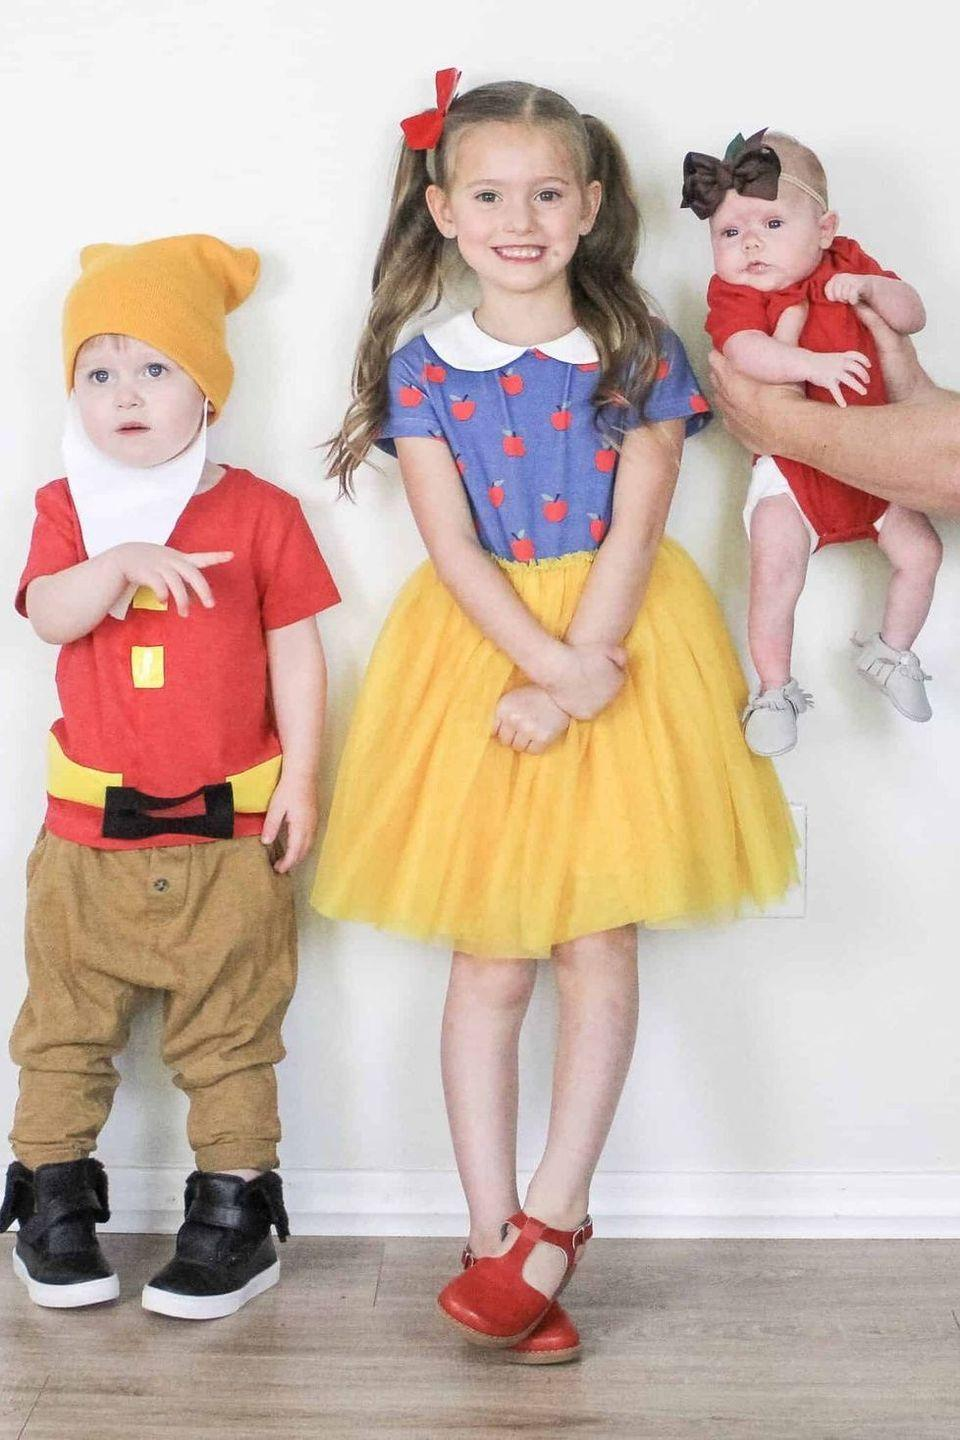 """<p>As you can see, this delightful Disney costume works well with three people—even babies can get in on the fun! But if you <em>really</em> want to win Halloween, we suggest grabbing four more friends and completing the dwarf family.</p><p><strong>Get the tutorial at <a href=""""https://arinsolangeathome.com/disney-outfits-for-girls/"""" rel=""""nofollow noopener"""" target=""""_blank"""" data-ylk=""""slk:Arin Solange at Home"""" class=""""link rapid-noclick-resp"""">Arin Solange at Home</a>.</strong></p><p><a class=""""link rapid-noclick-resp"""" href=""""https://go.redirectingat.com?id=74968X1596630&url=https%3A%2F%2Fwww.walmart.com%2Fsearch%2F%3Fquery%3Dsnow%2Bwhite%2Bcostumes&sref=https%3A%2F%2Fwww.thepioneerwoman.com%2Fhome-lifestyle%2Fcrafts-diy%2Fg37066817%2Fhalloween-costumes-for-3-people%2F"""" rel=""""nofollow noopener"""" target=""""_blank"""" data-ylk=""""slk:SHOP SNOW WHITE COSTUMES"""">SHOP SNOW WHITE COSTUMES</a></p>"""